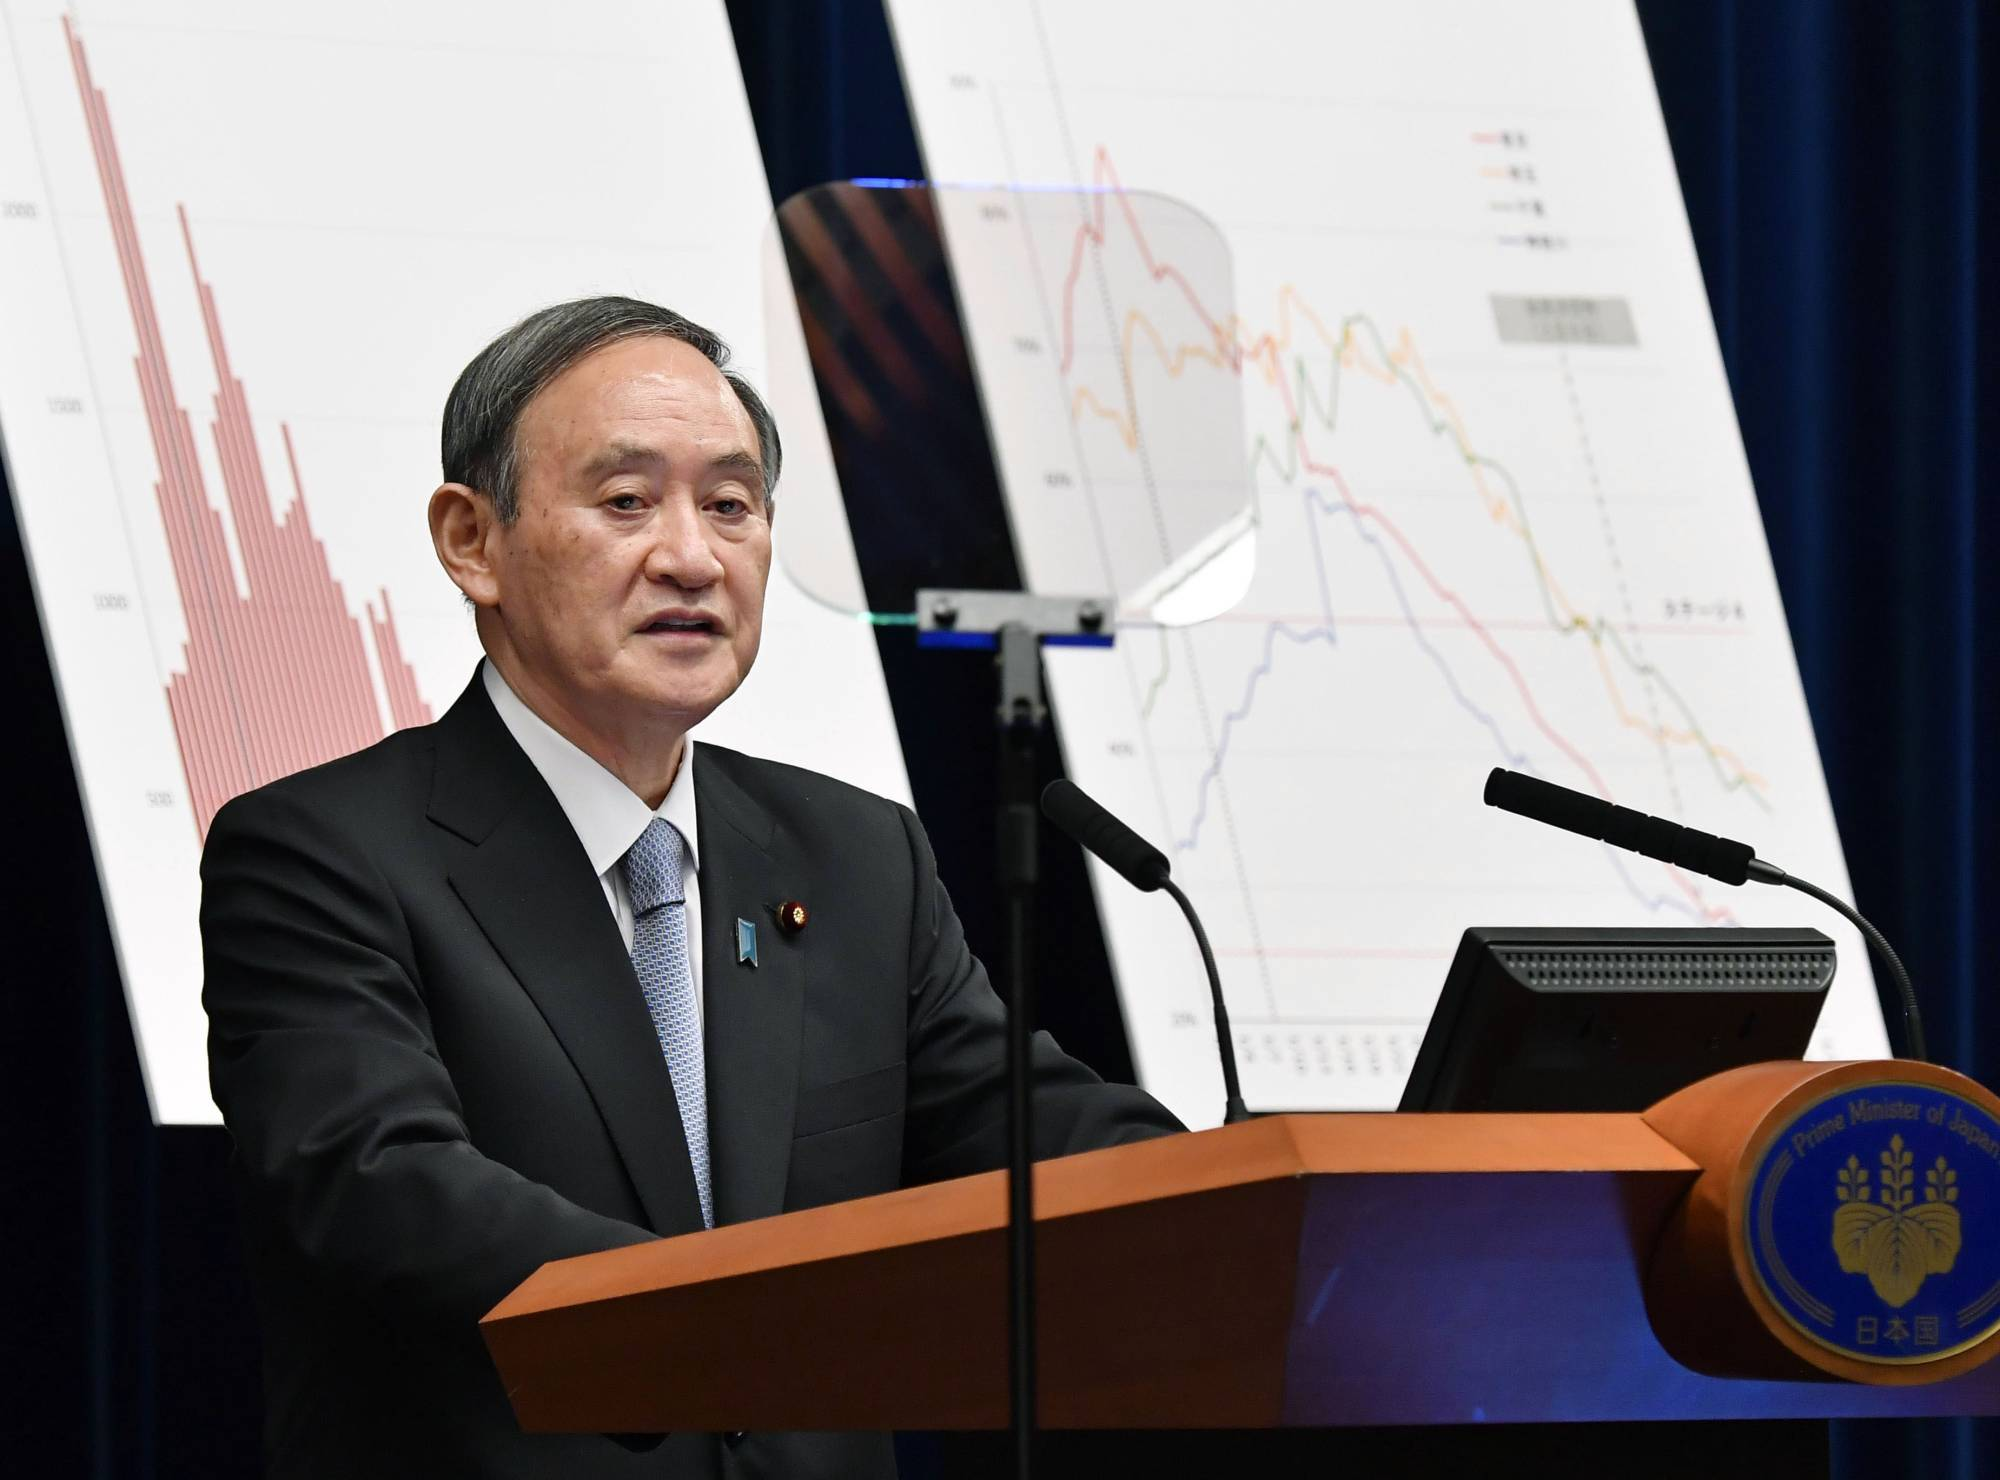 Prime Minister Yoshihide Suga speaks at a news conference held at the Prime Minister's Office on Thursday after the government decided to end the state of emergency for the Tokyo metropolitan region on Sunday. | KYODO